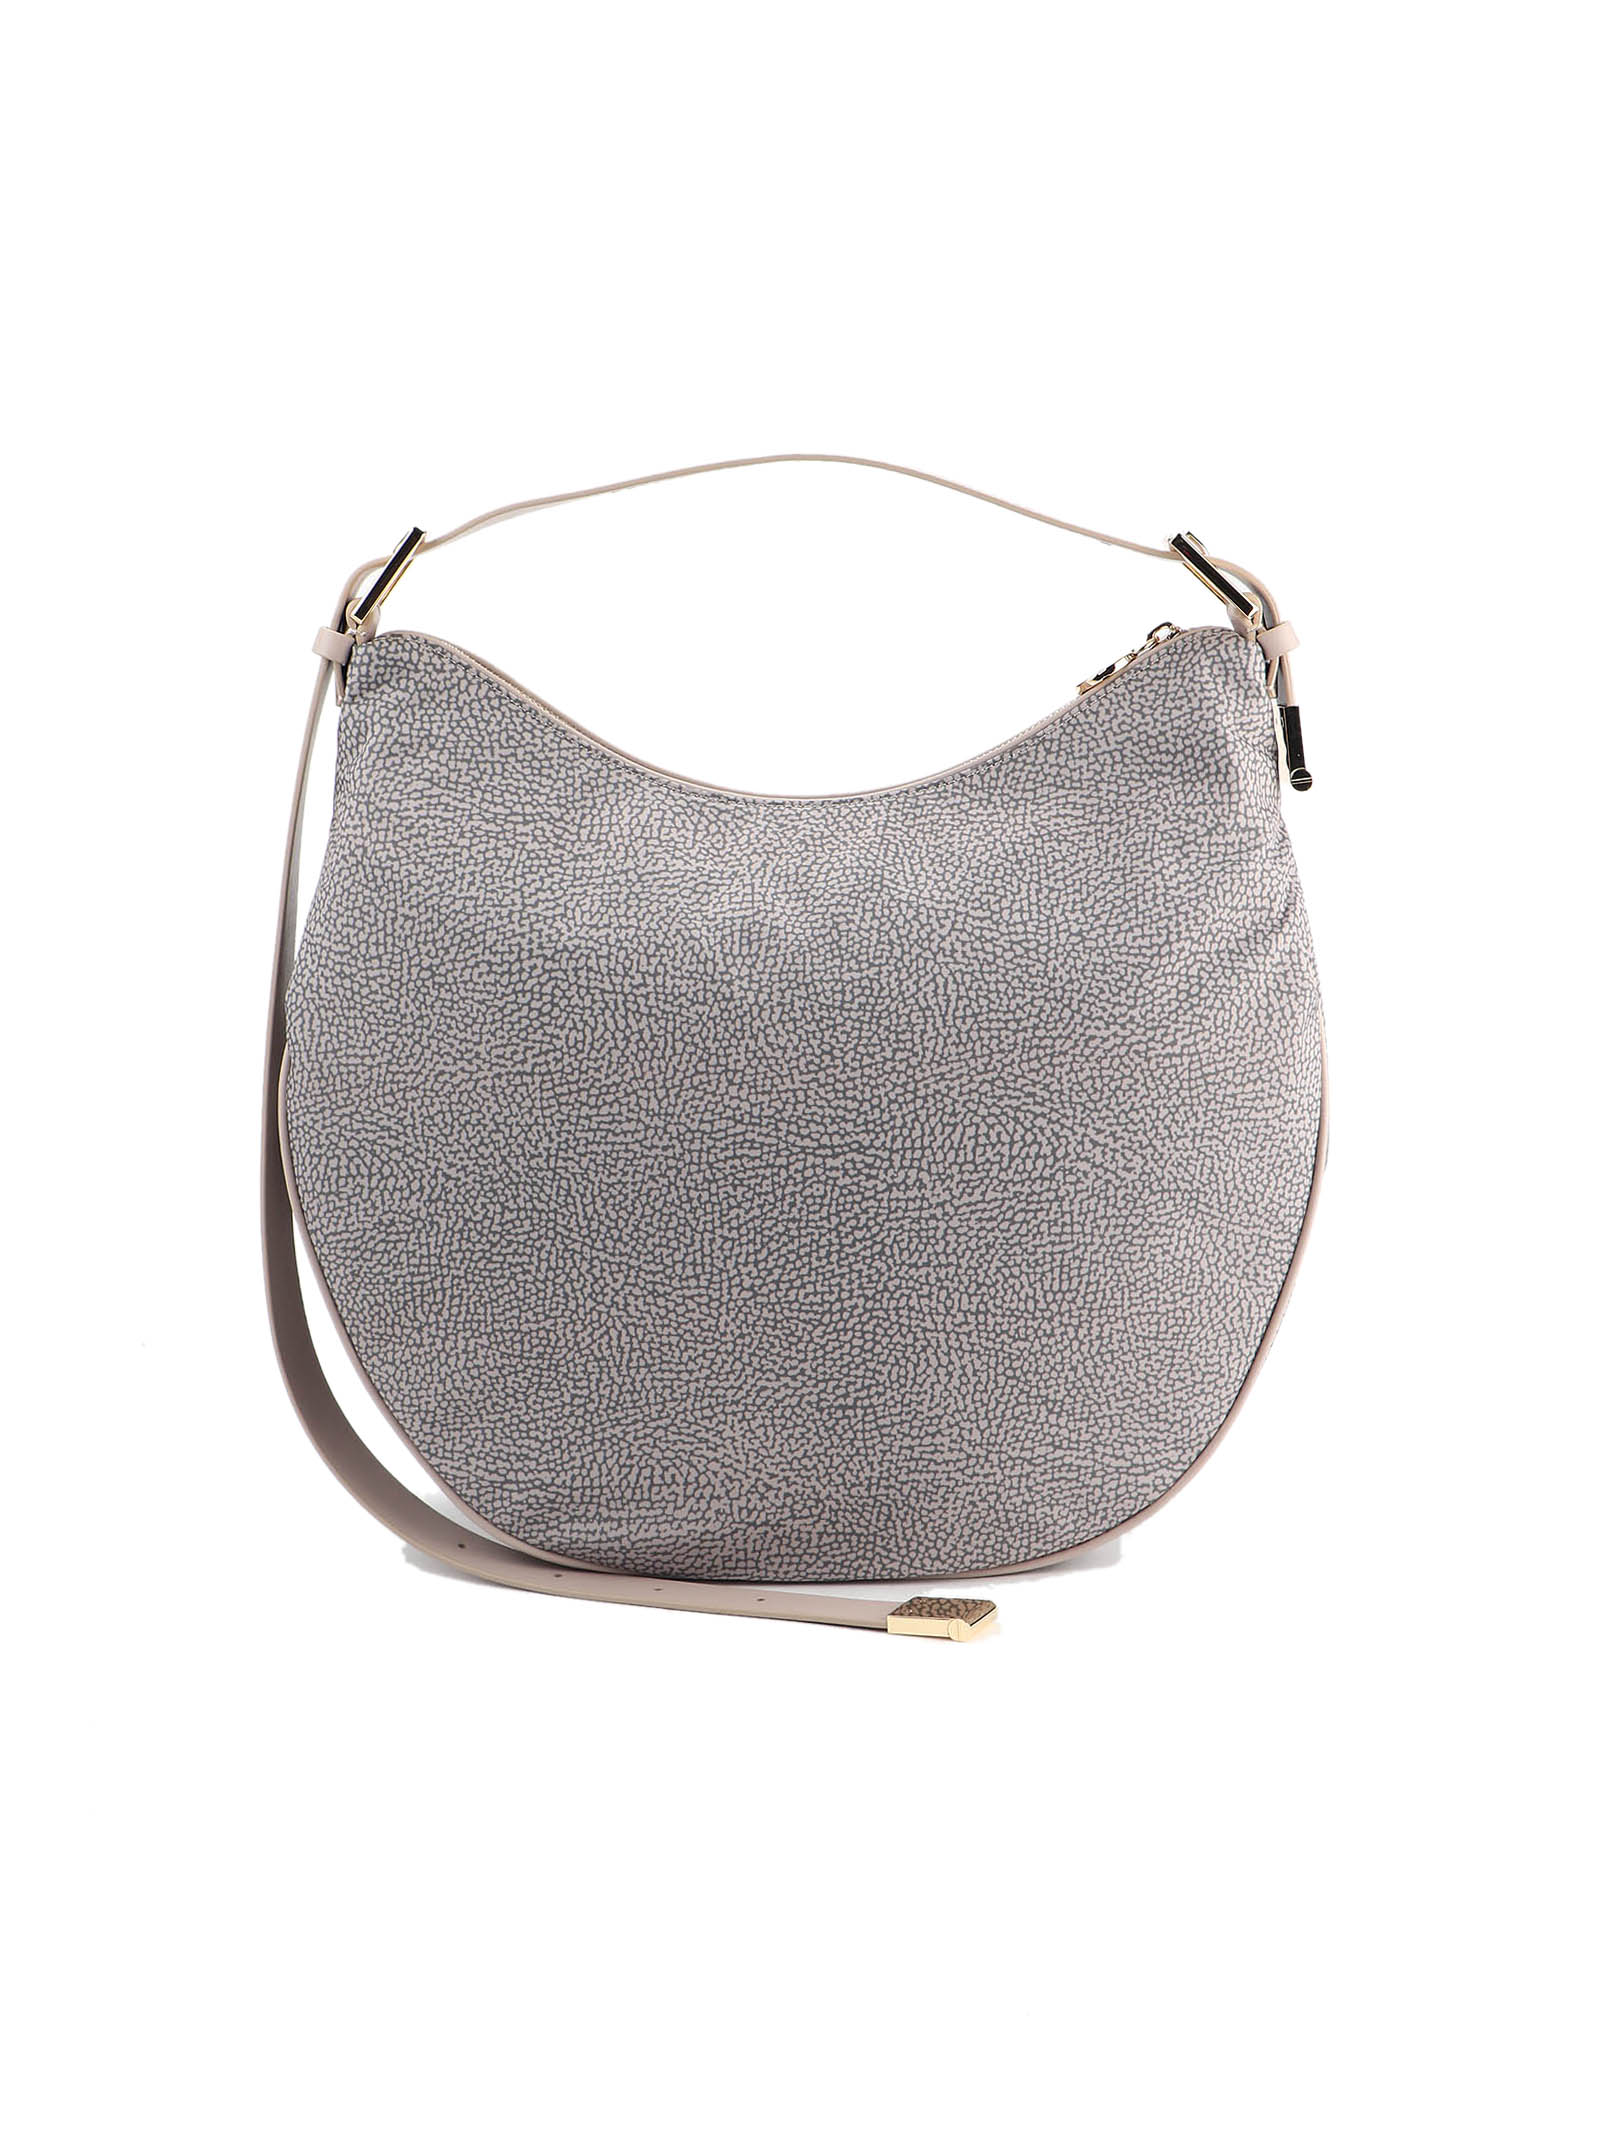 Picture of Borbonese | Hobo Bag Large